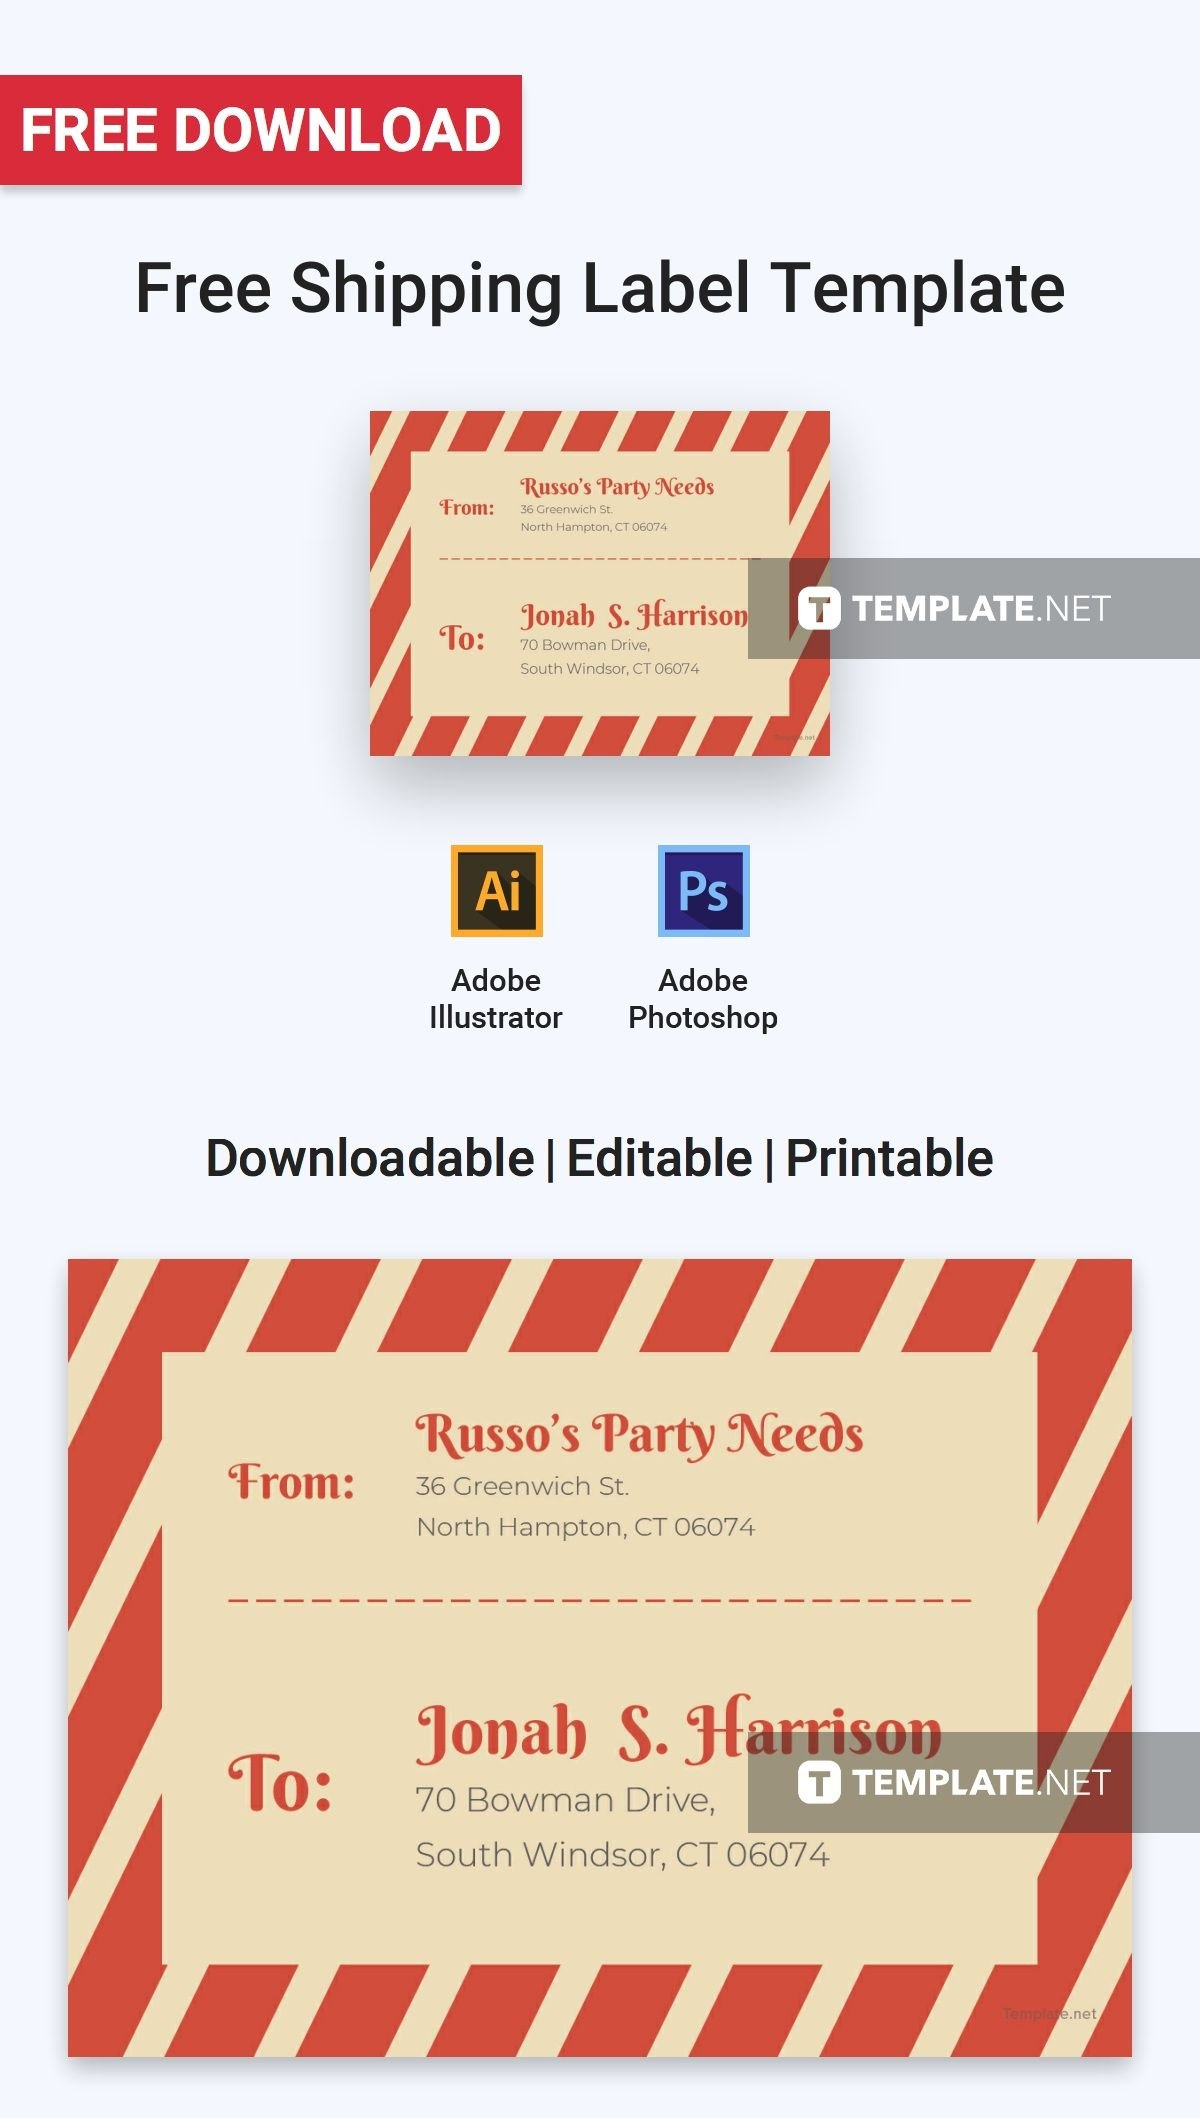 Free Shipping Label  Label Templates  Designs   Label For Adobe Illustrator Label Template